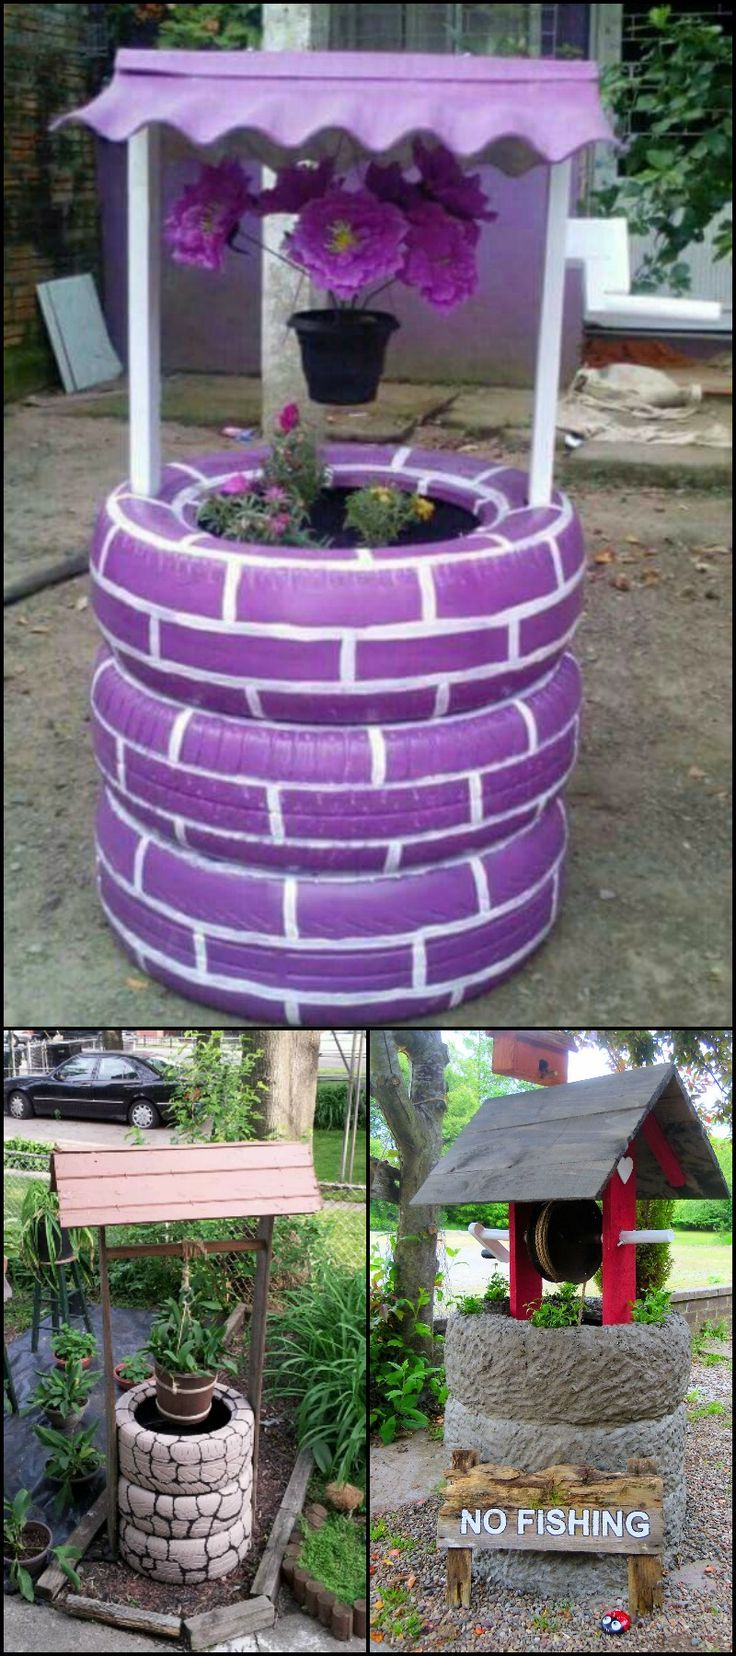 25 best ideas about recycled tires on pinterest recycle